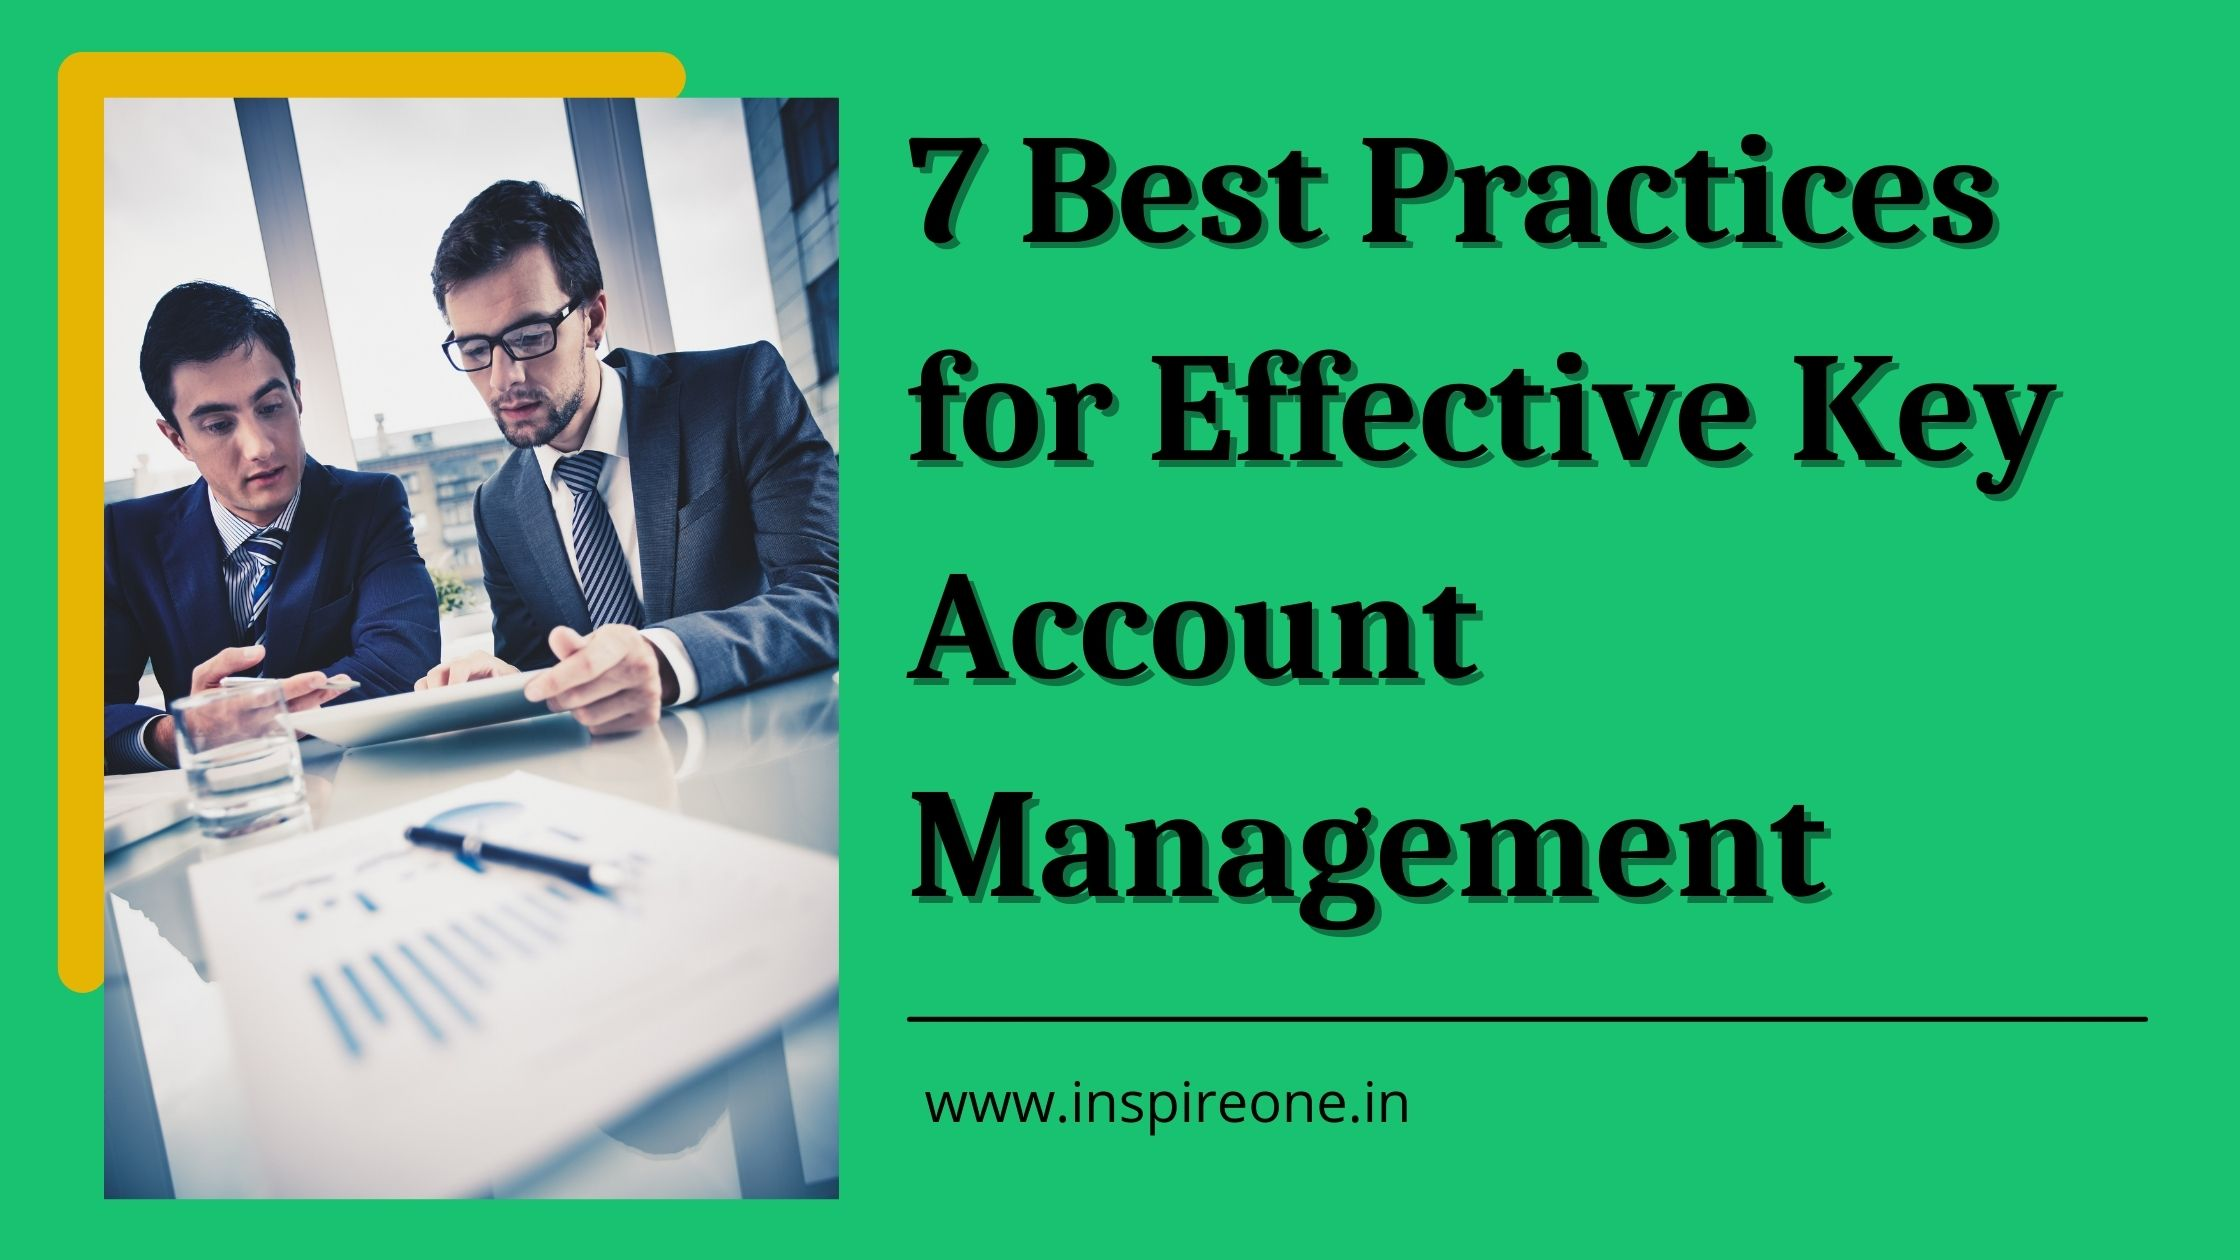 7 Best Practices for Effective Key Account Management